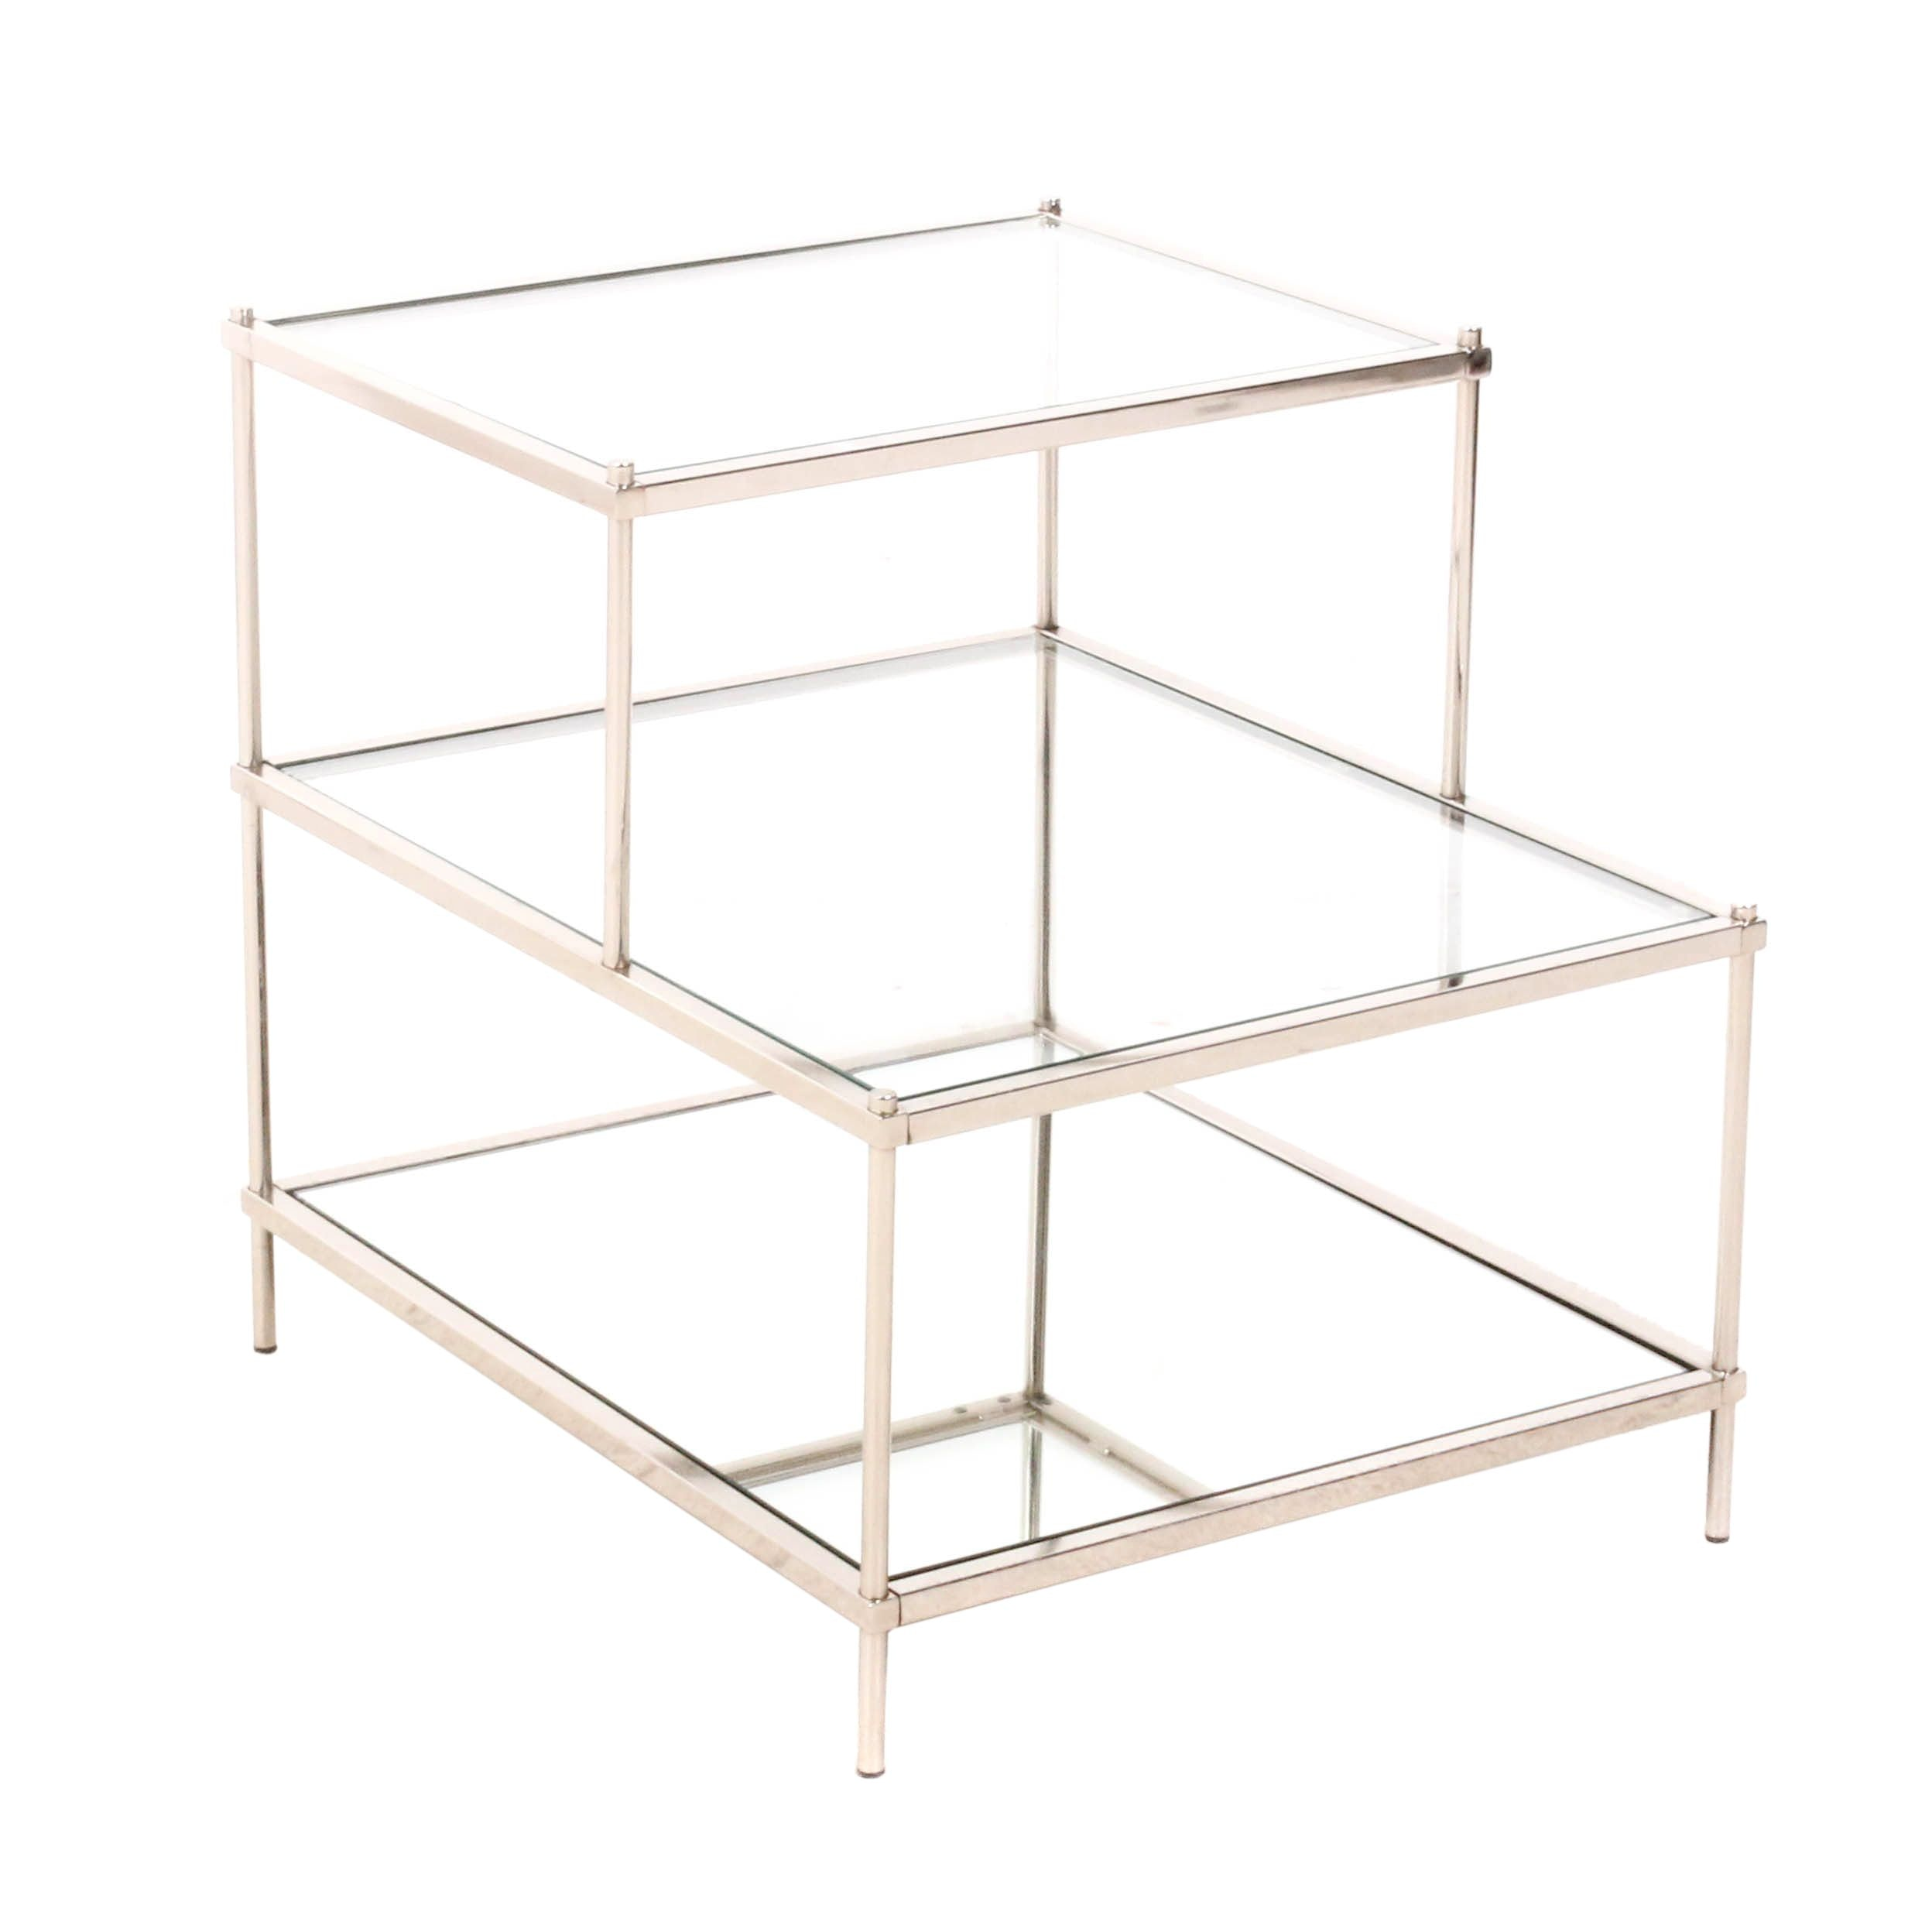 Chromed Metal Glass-Top End Table, Contemporary